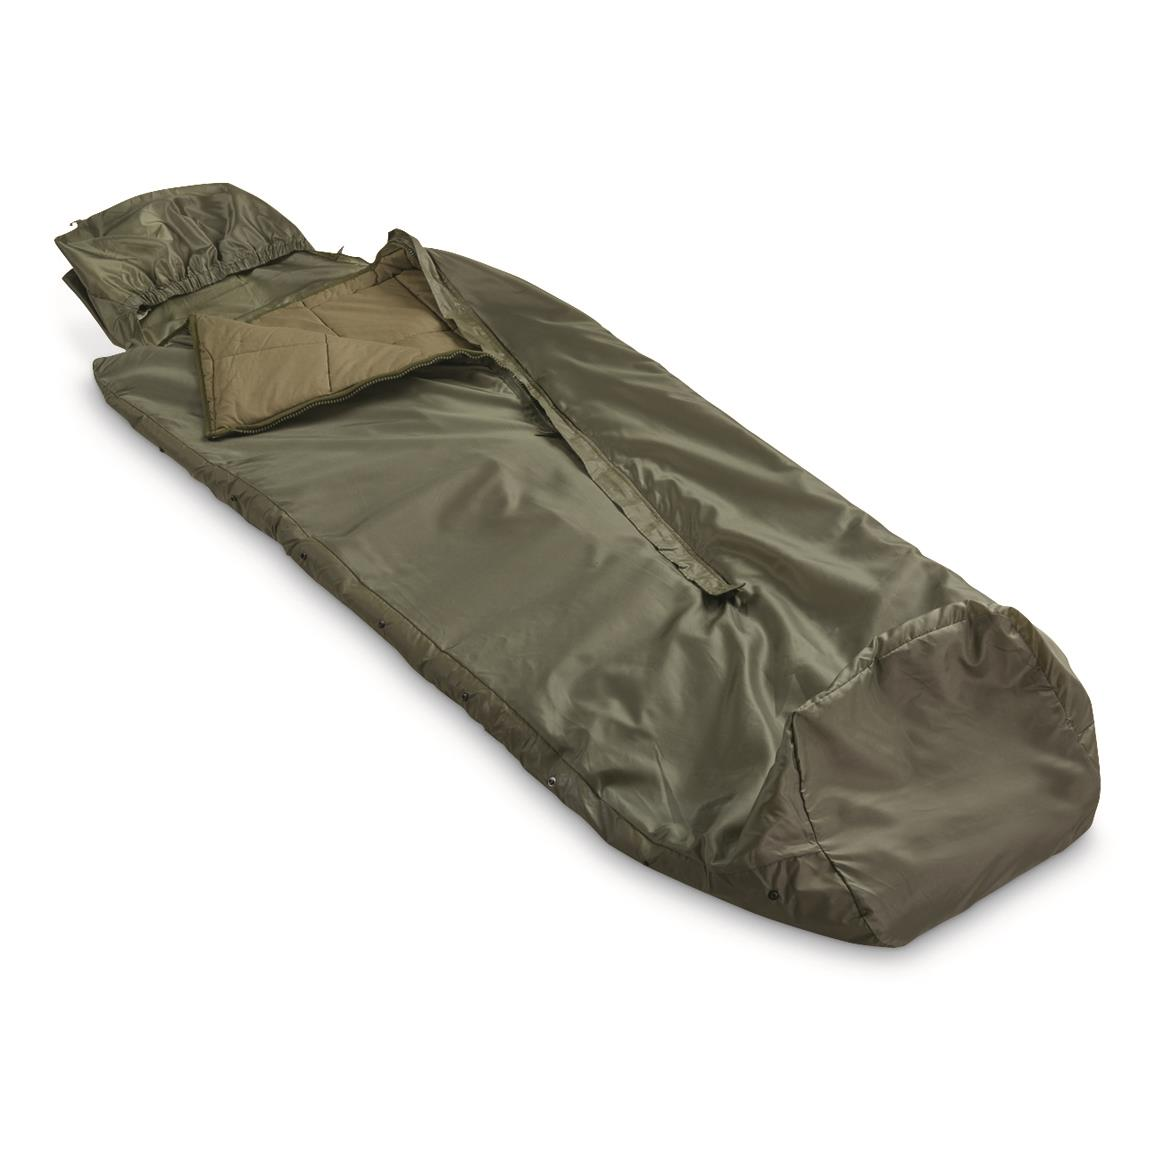 French Military Surplus Sleeping Bag, New